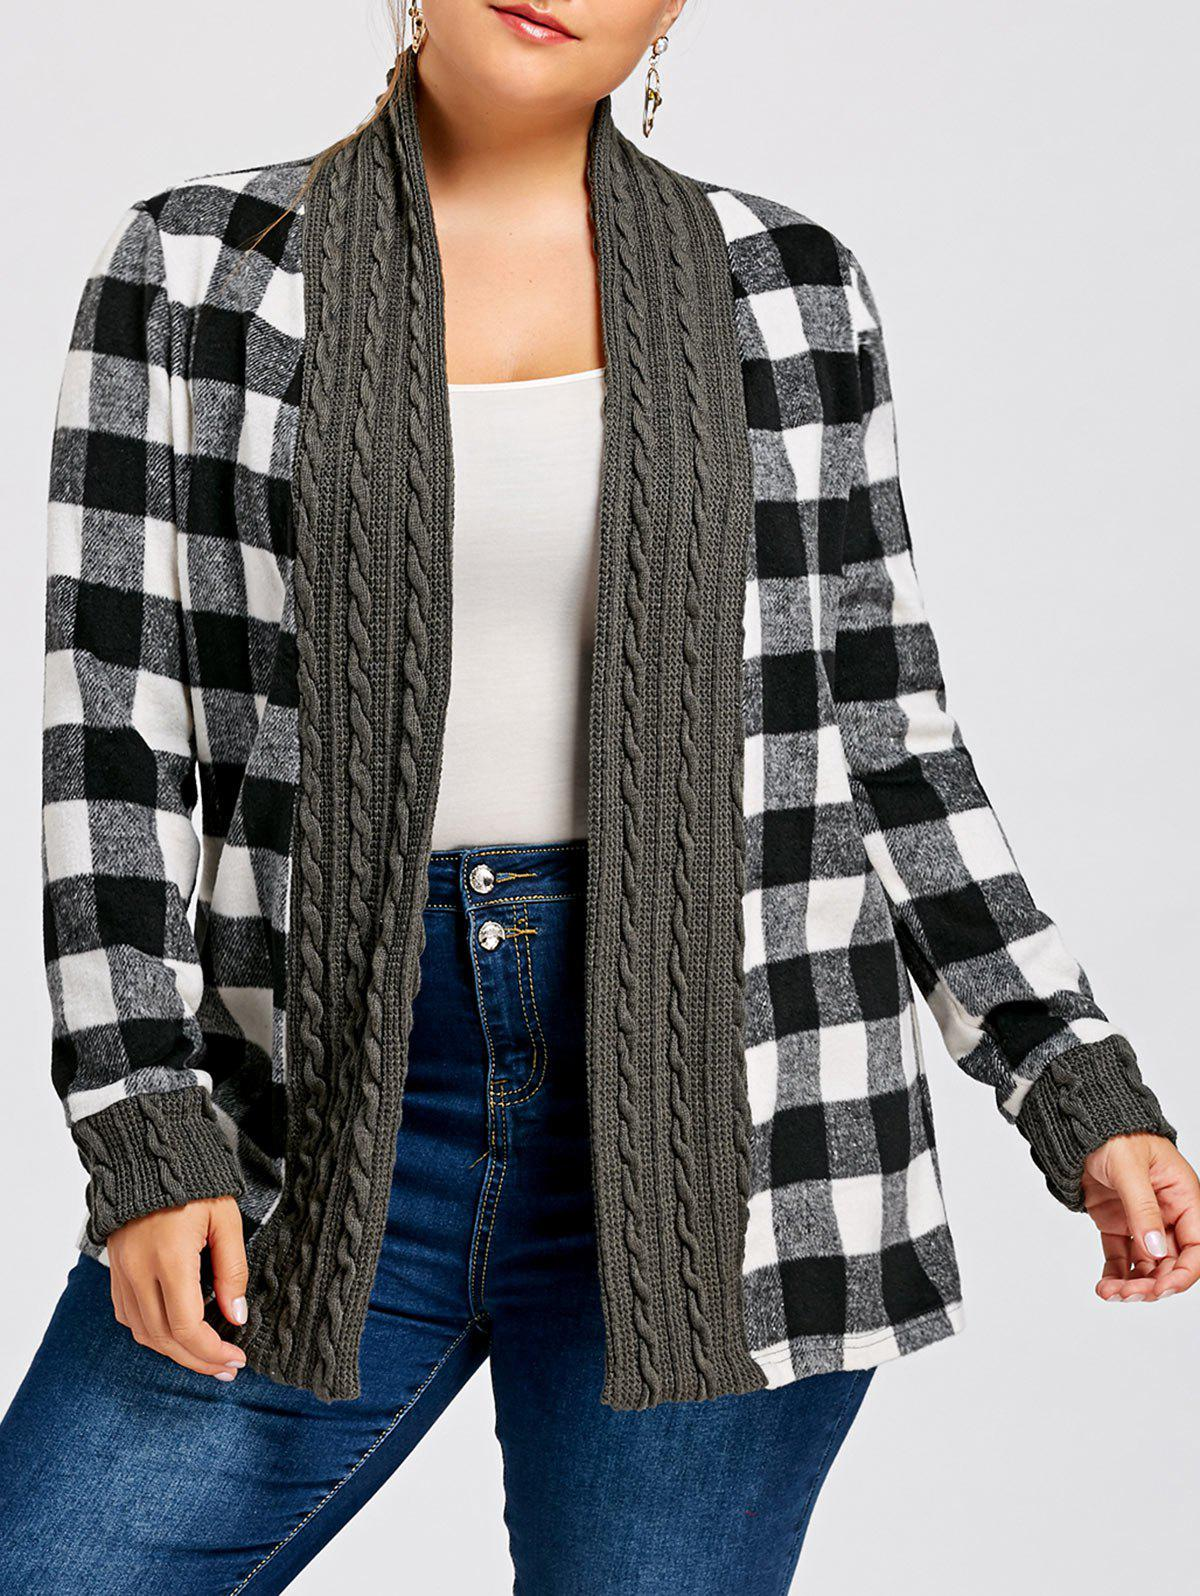 Plus Size Plaid Long Sleeve Shawl Collar CardiganWOMEN<br><br>Size: 4XL; Color: CHECKED; Type: Cardigans; Material: Cotton,Polyester; Sleeve Length: Full; Collar: Shawl Collar; Style: Casual; Season: Fall,Spring,Winter; Pattern Type: Plaid; Weight: 0.5500kg; Package Contents: 1 x Cardigan;